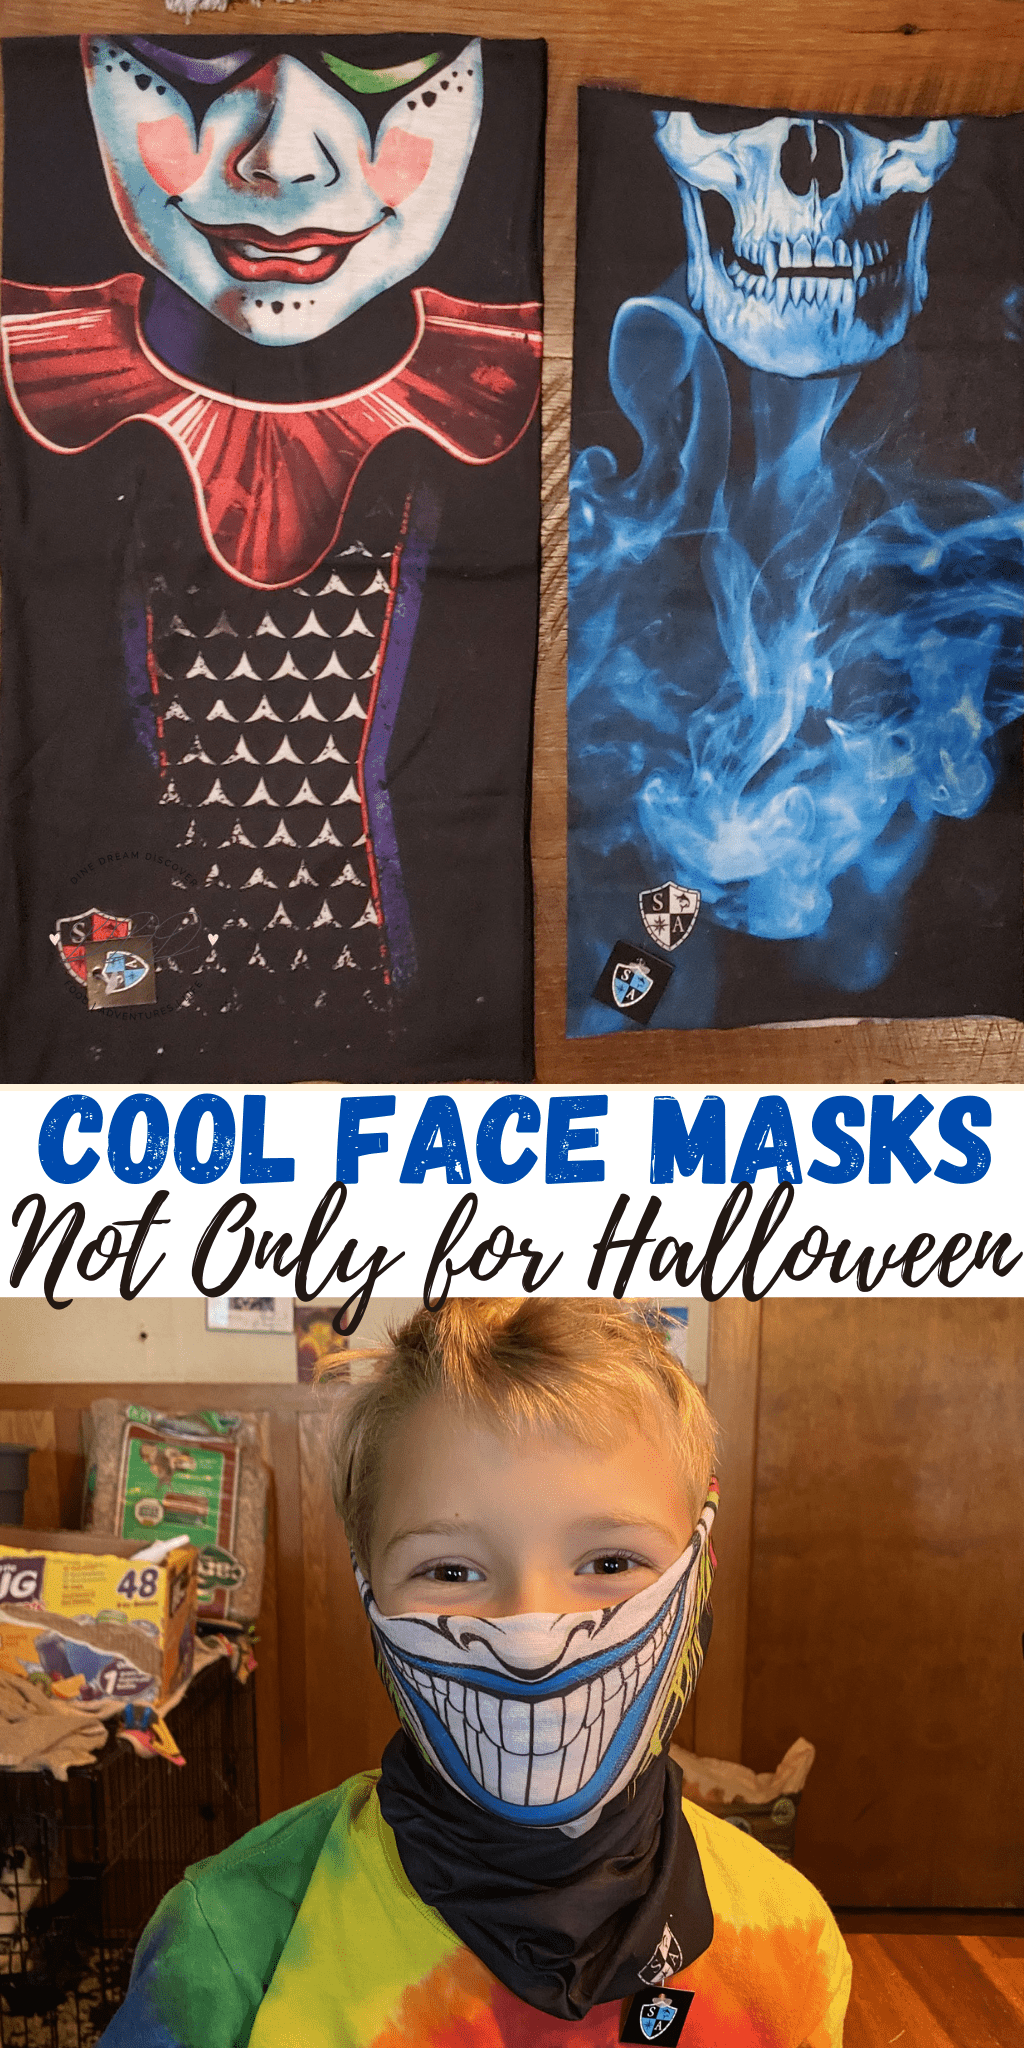 Cool Face Masks and Multi Use Shields